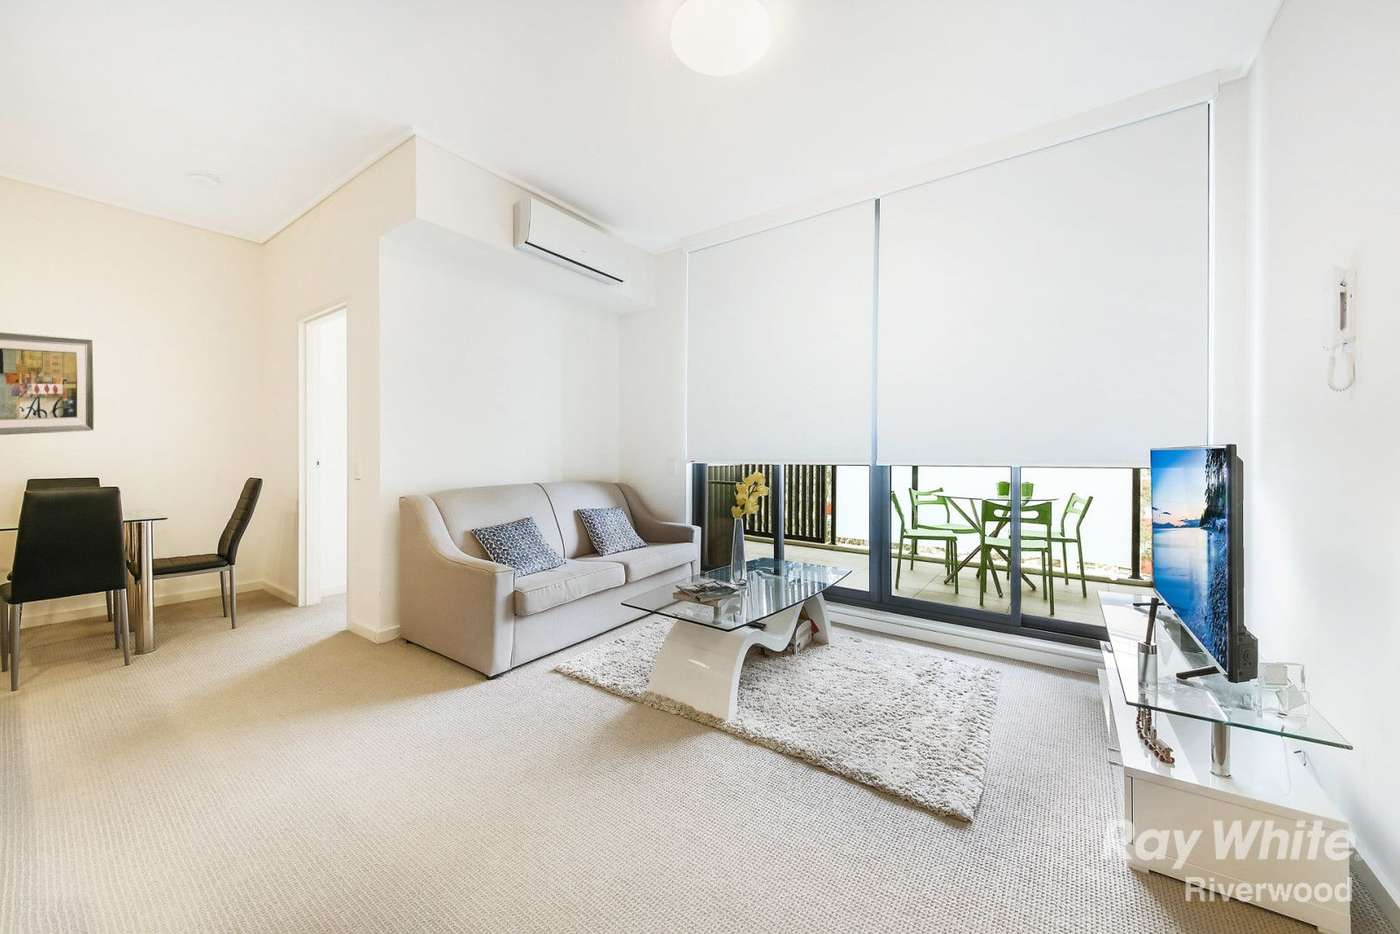 Main view of Homely apartment listing, 610/7 Washington Avenue, Riverwood NSW 2210